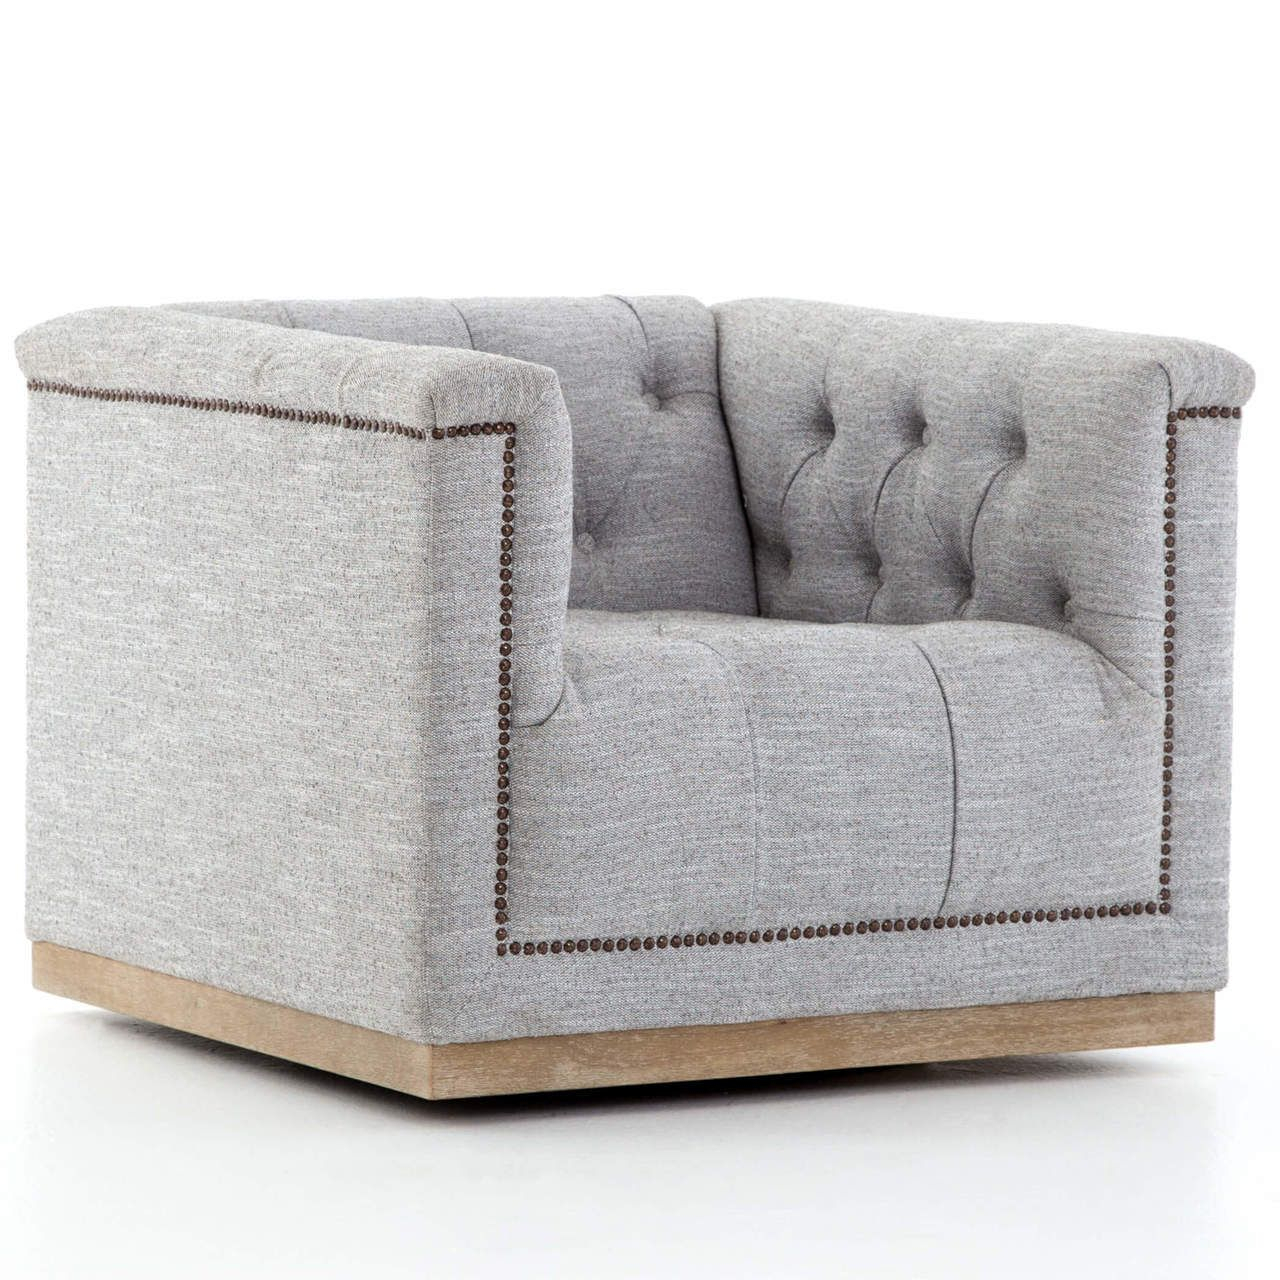 Featured Image of Manor Grey Swivel Chairs